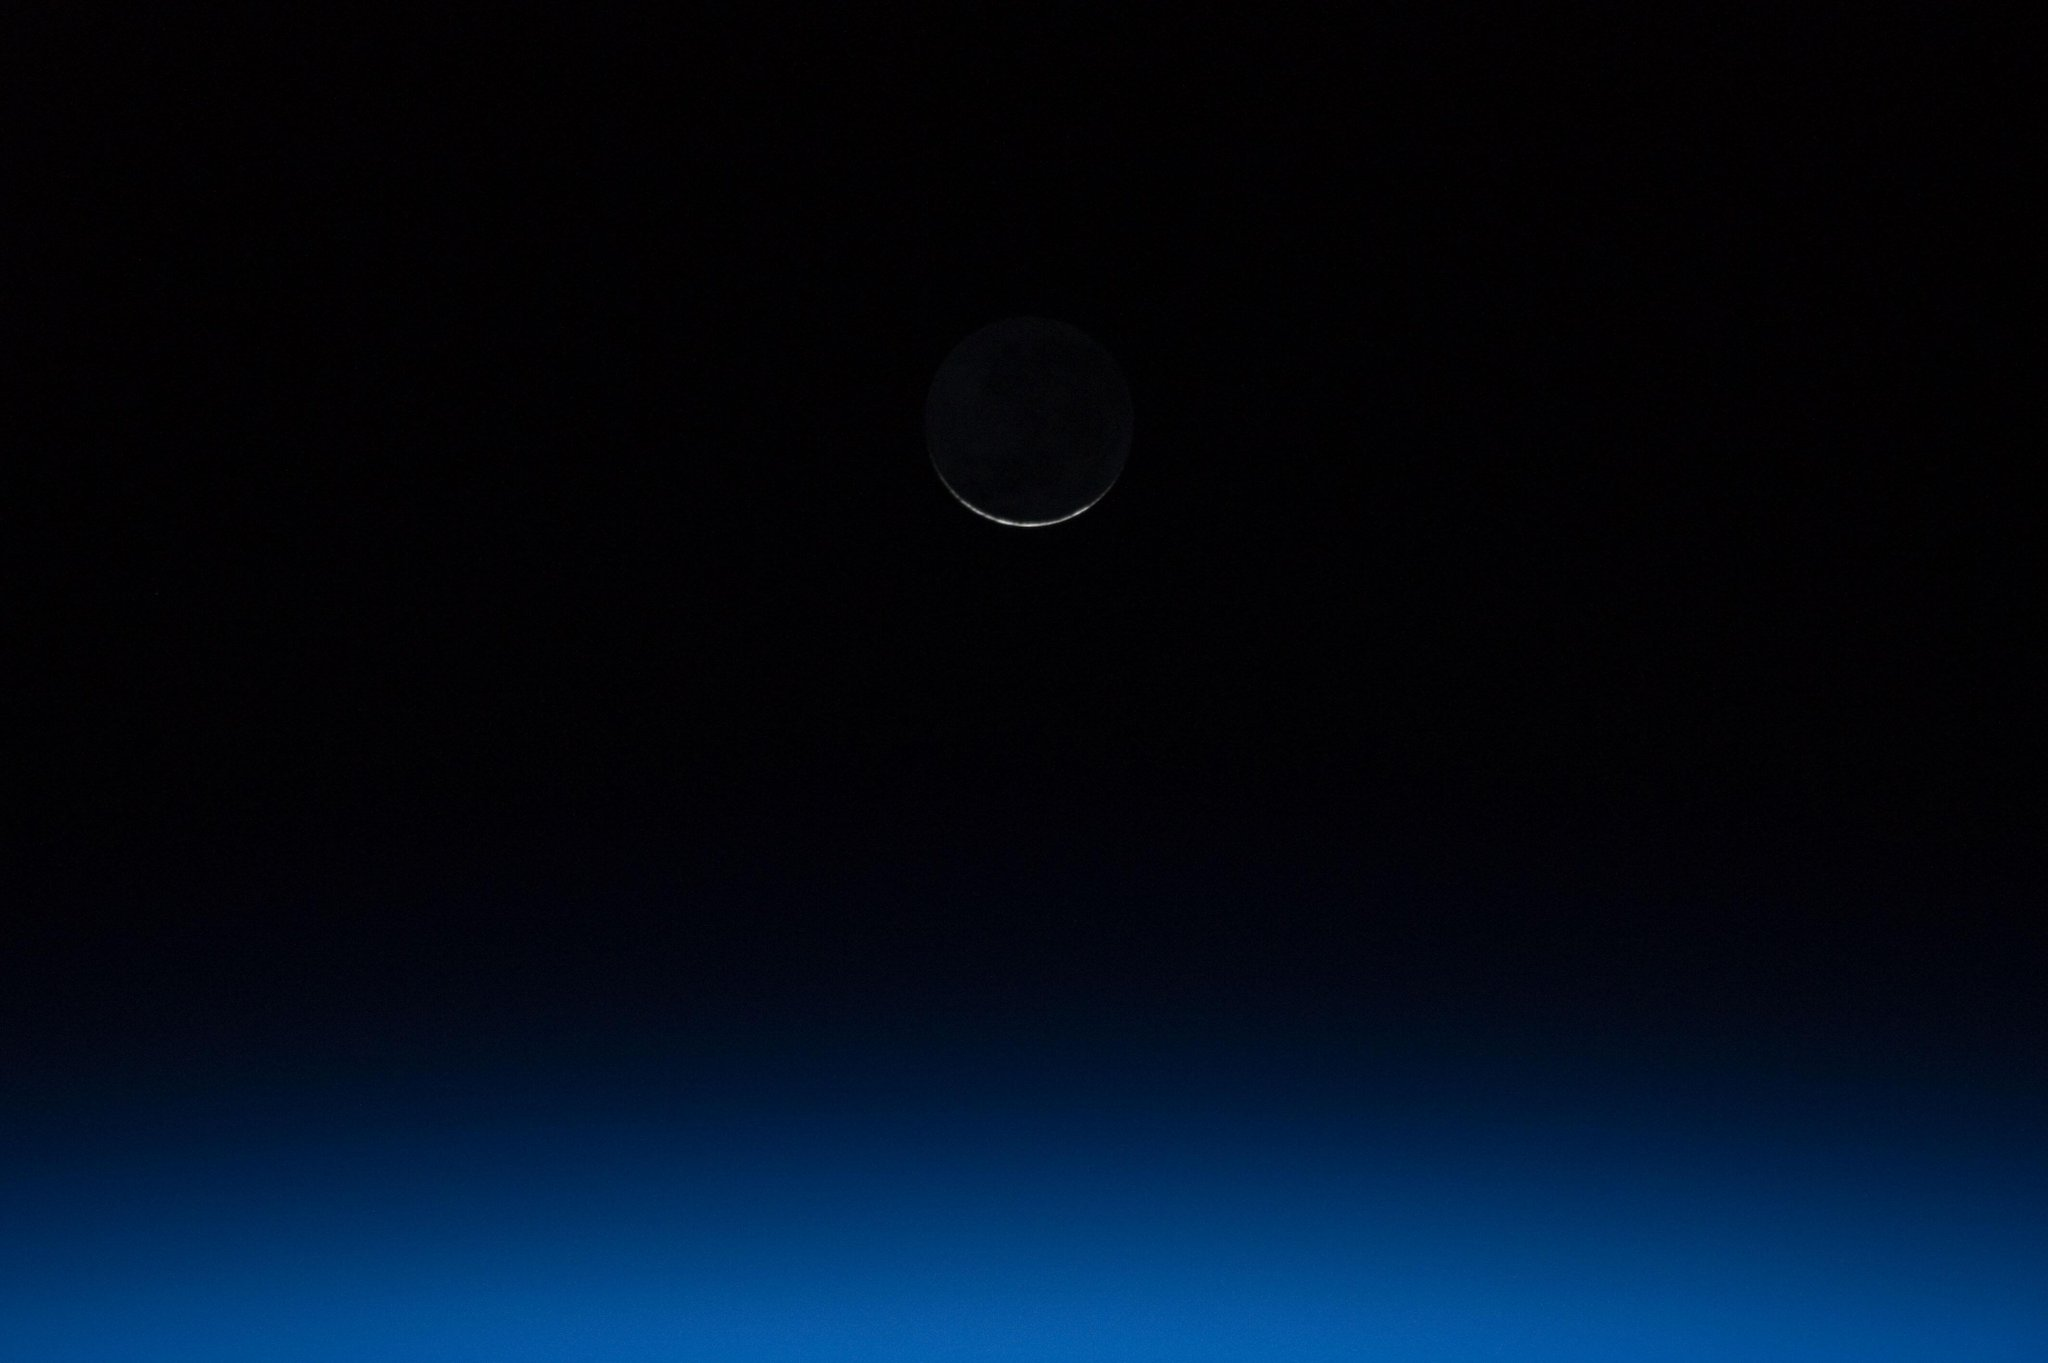 Twitter / PC0101: Moon crescent, tiniest ever ...